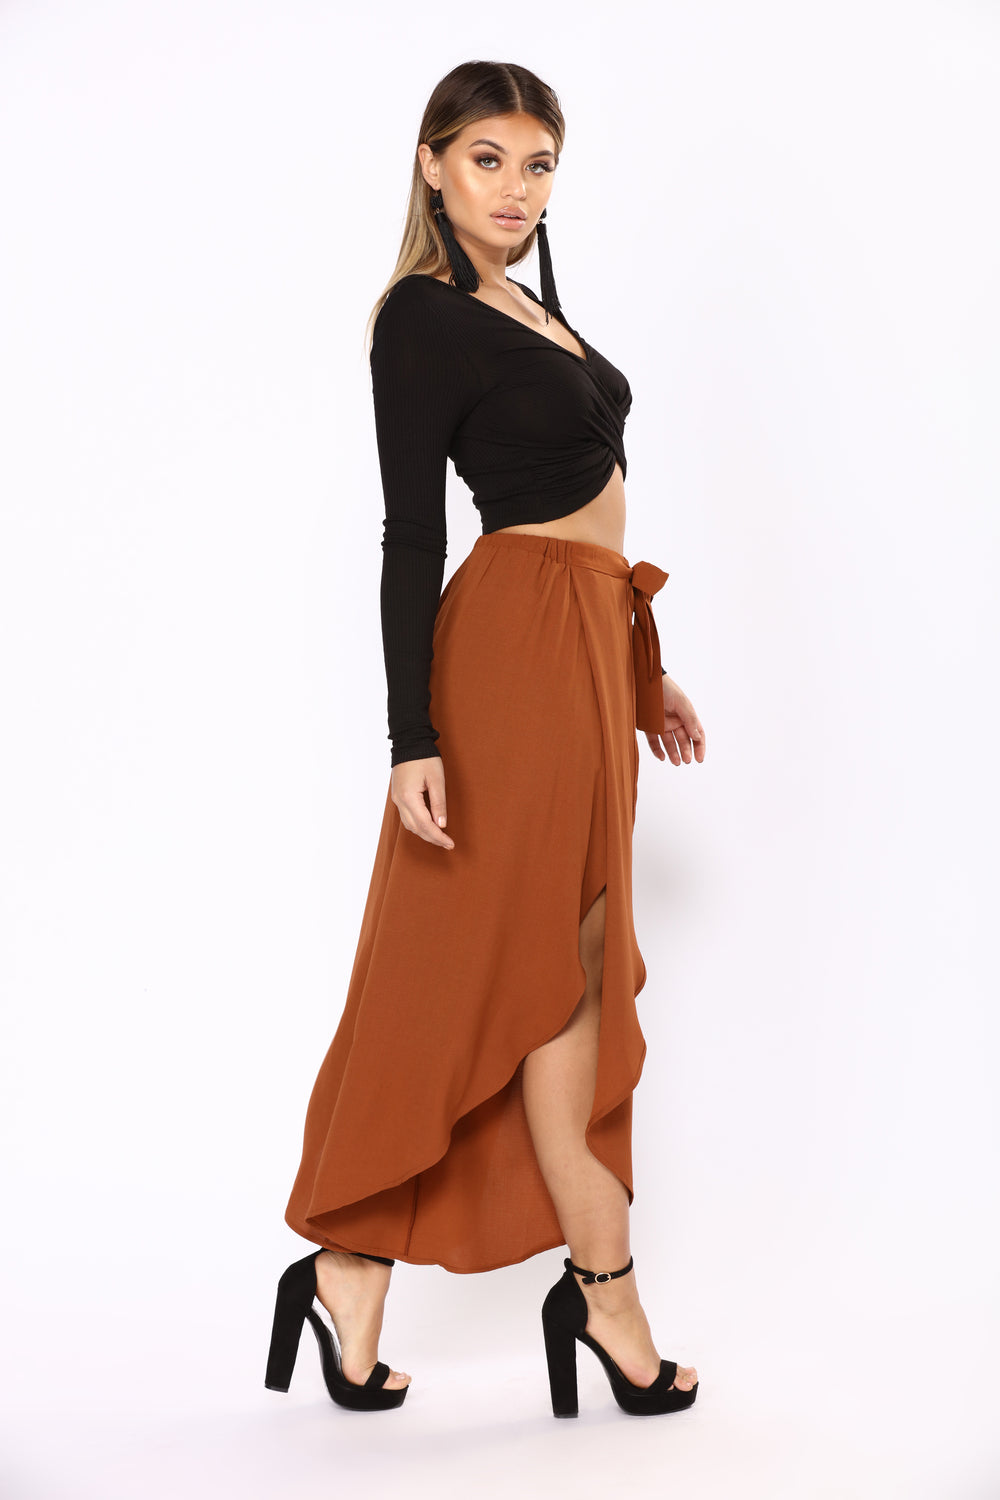 Simona Layered Waist Tie Pants - Hazelnut